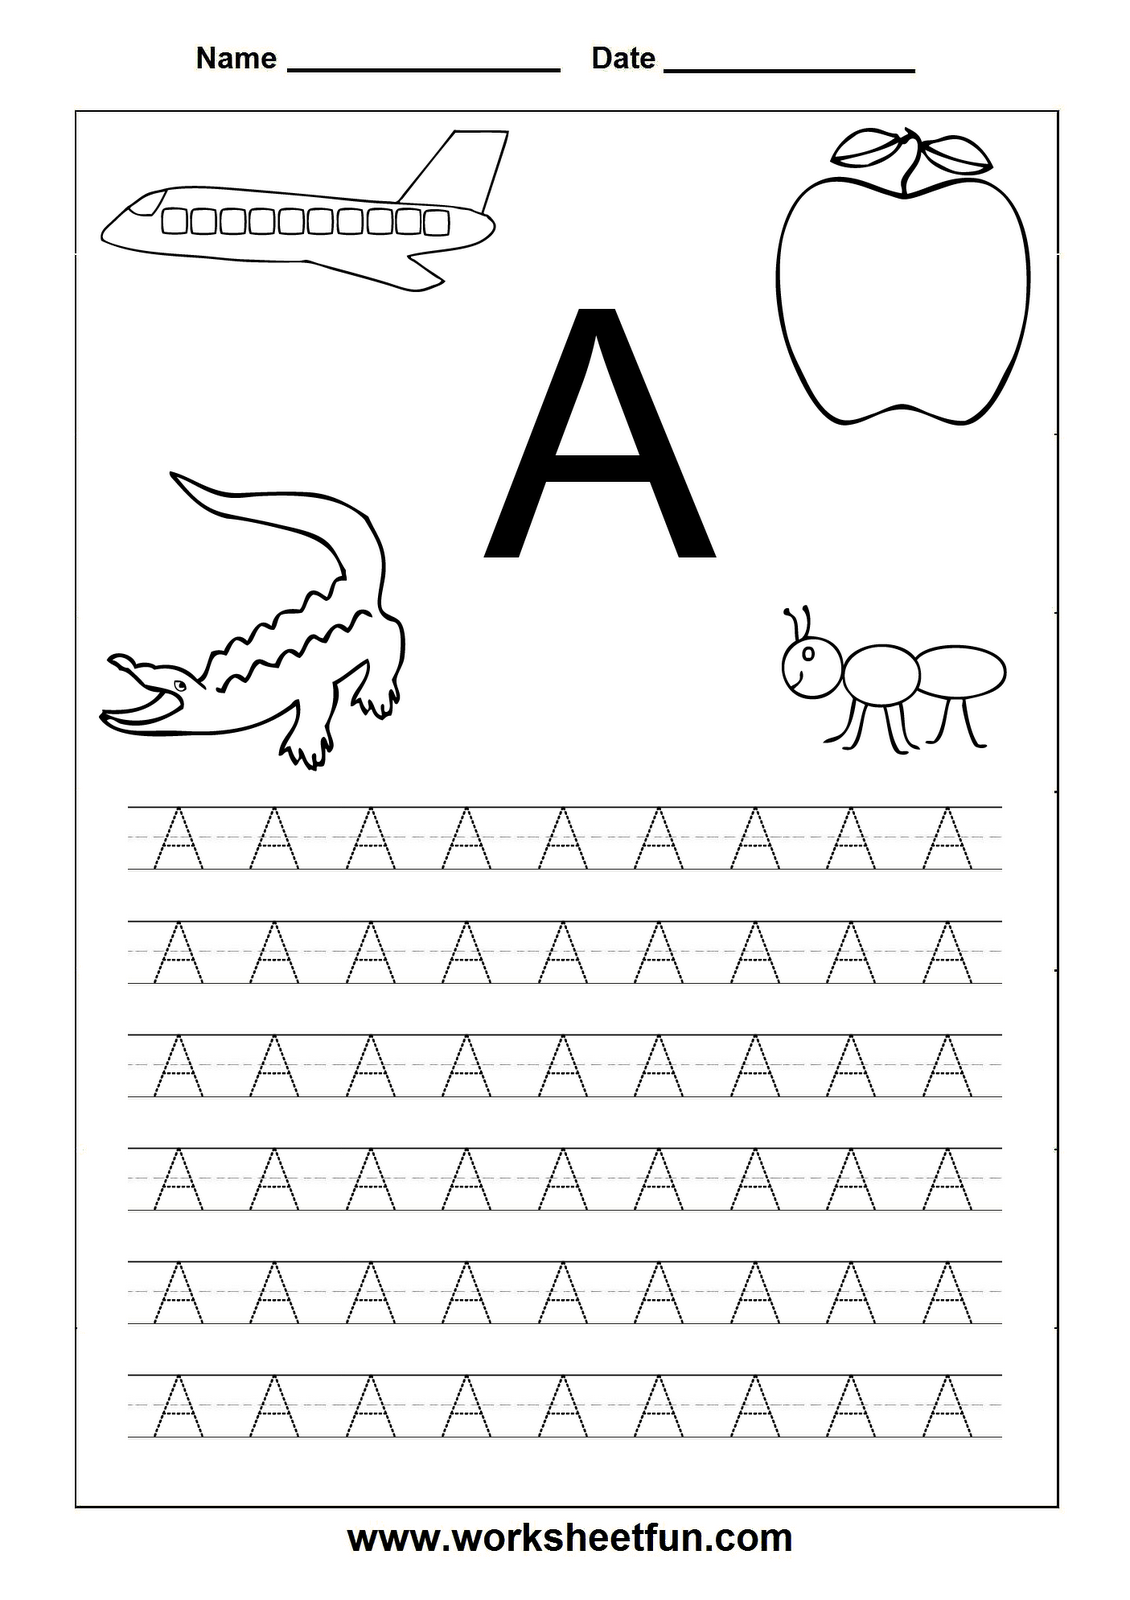 Printables Free Printable Preschool Worksheets Tracing free printable tracing letter s worksheets for preschool a z capital there are plenty more on various subjects on